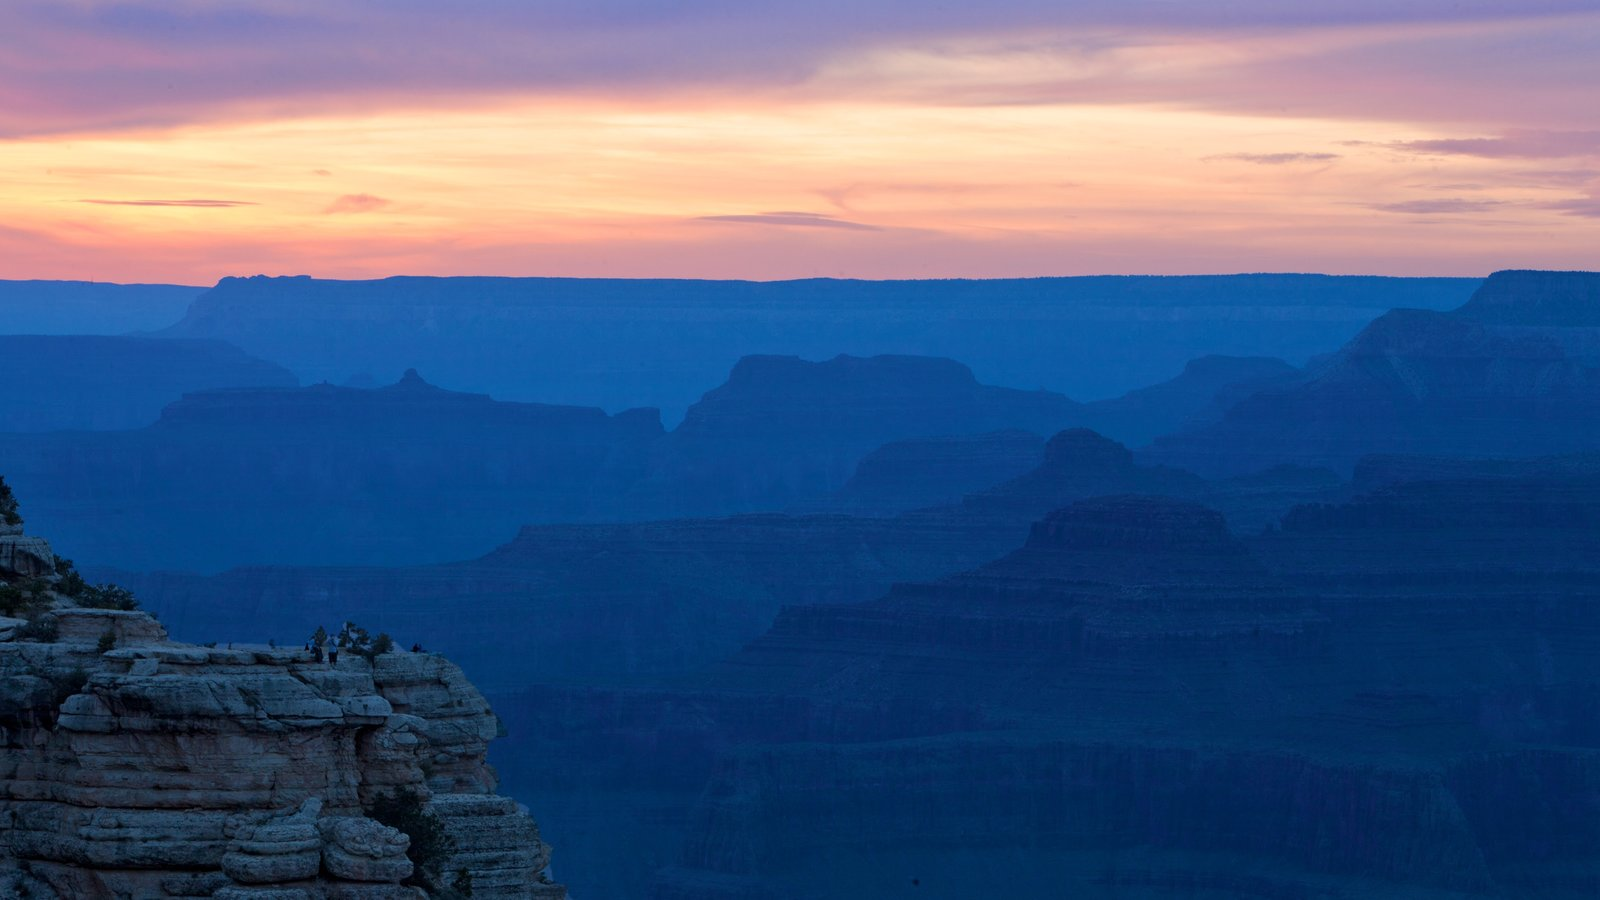 Grand Canyon which includes a sunset, landscape views and a gorge or canyon